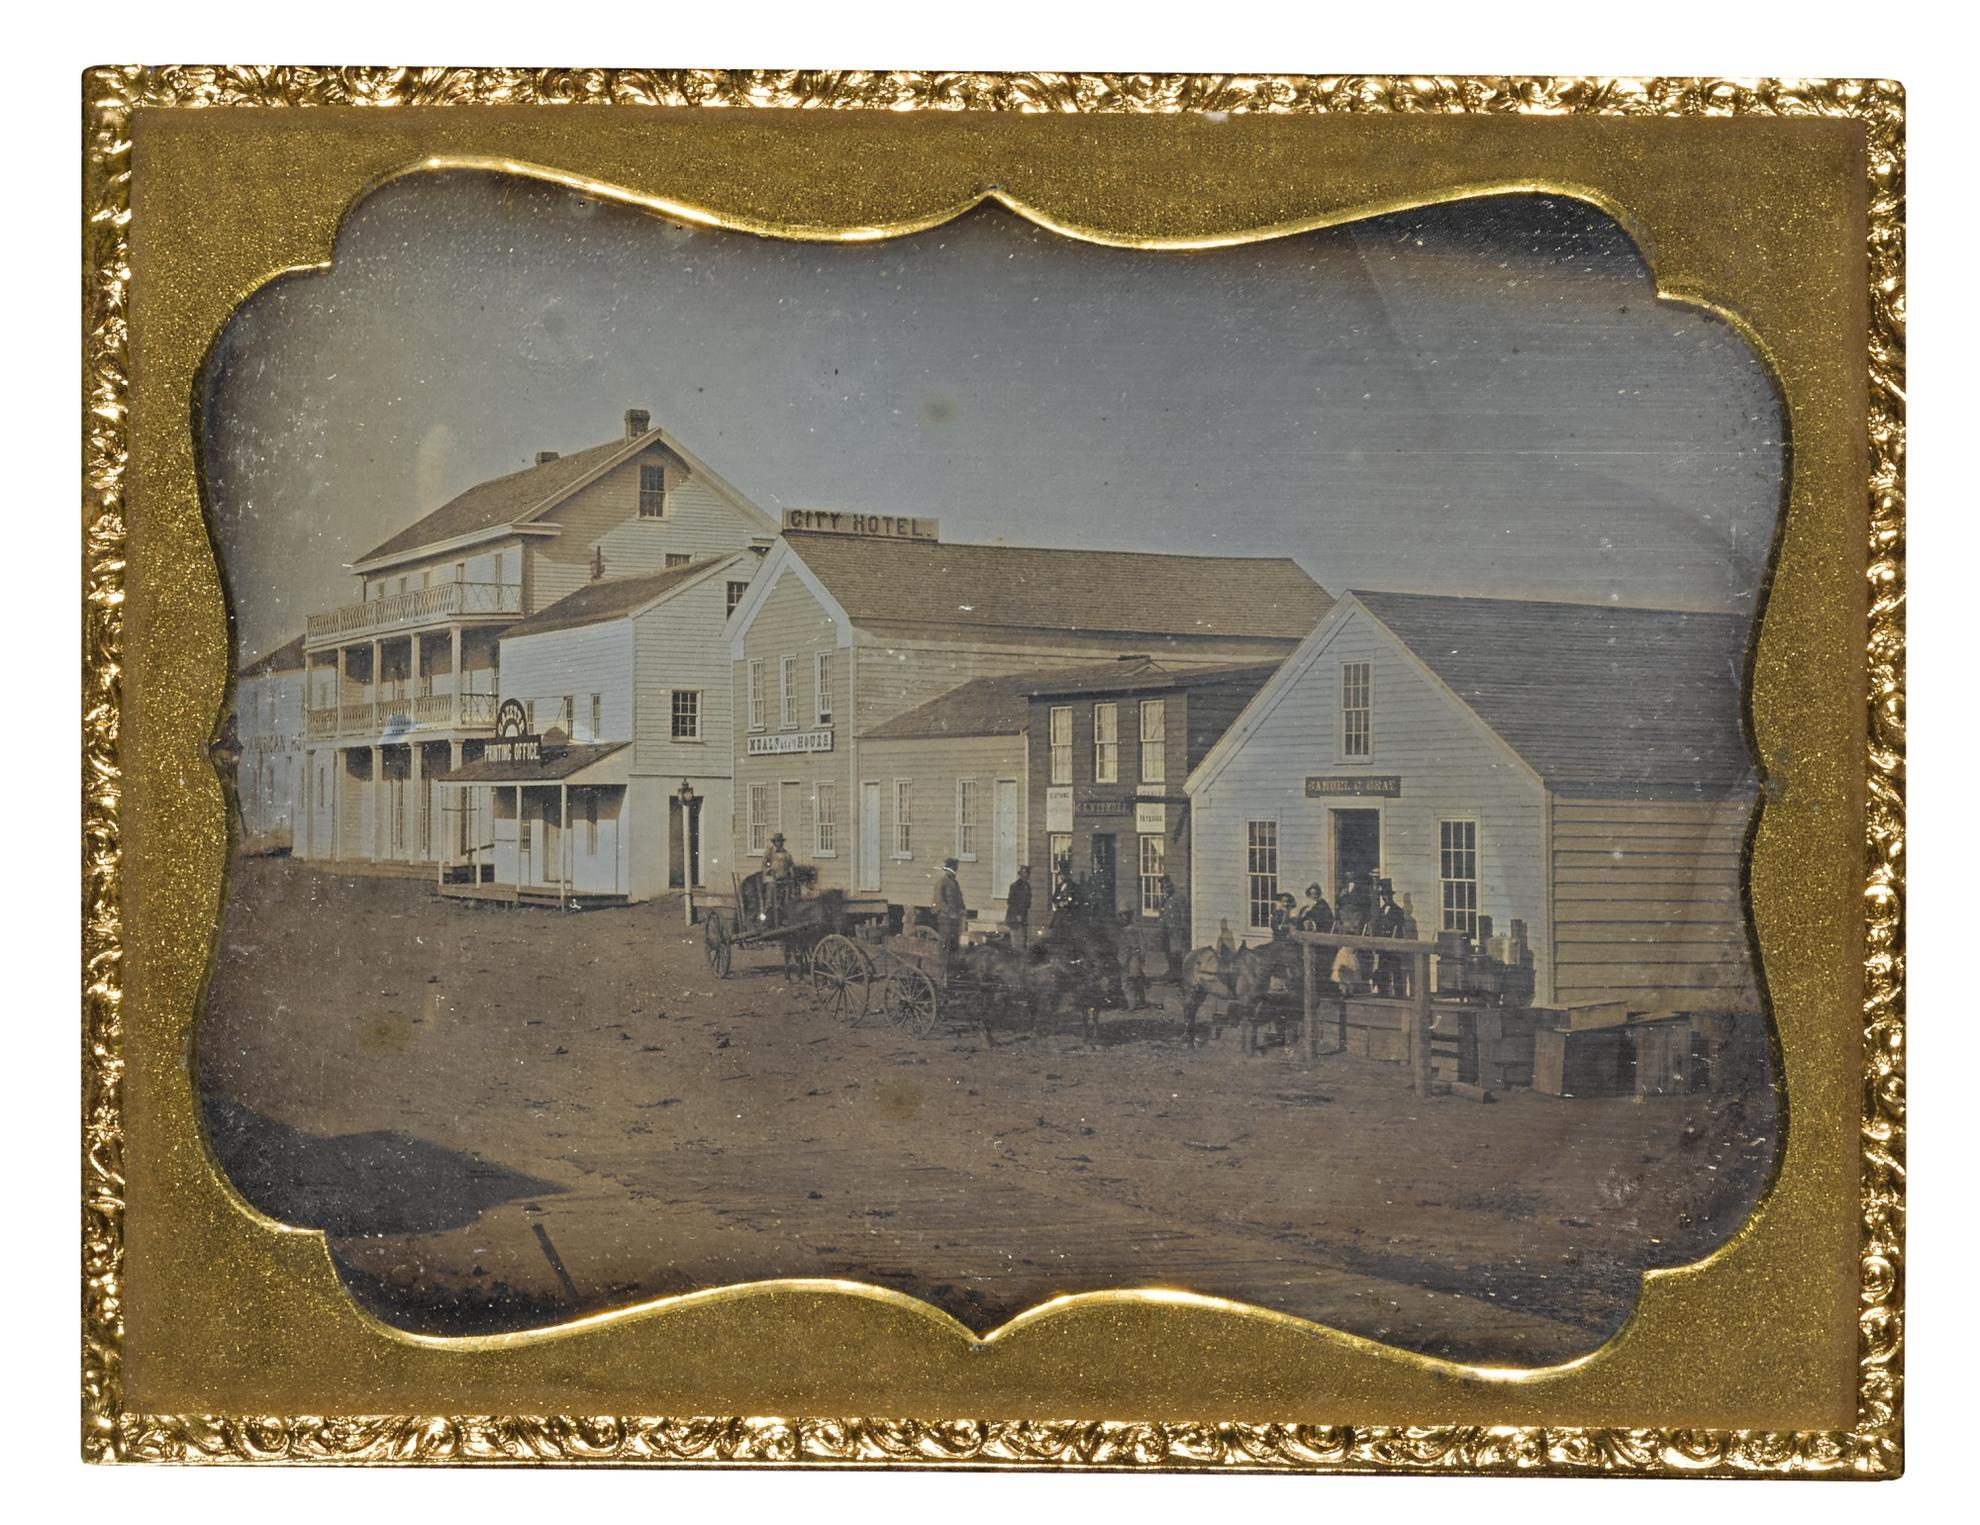 Attributed To Robert H. Vance - Street Scene In Benicia, Solano County, California-1850